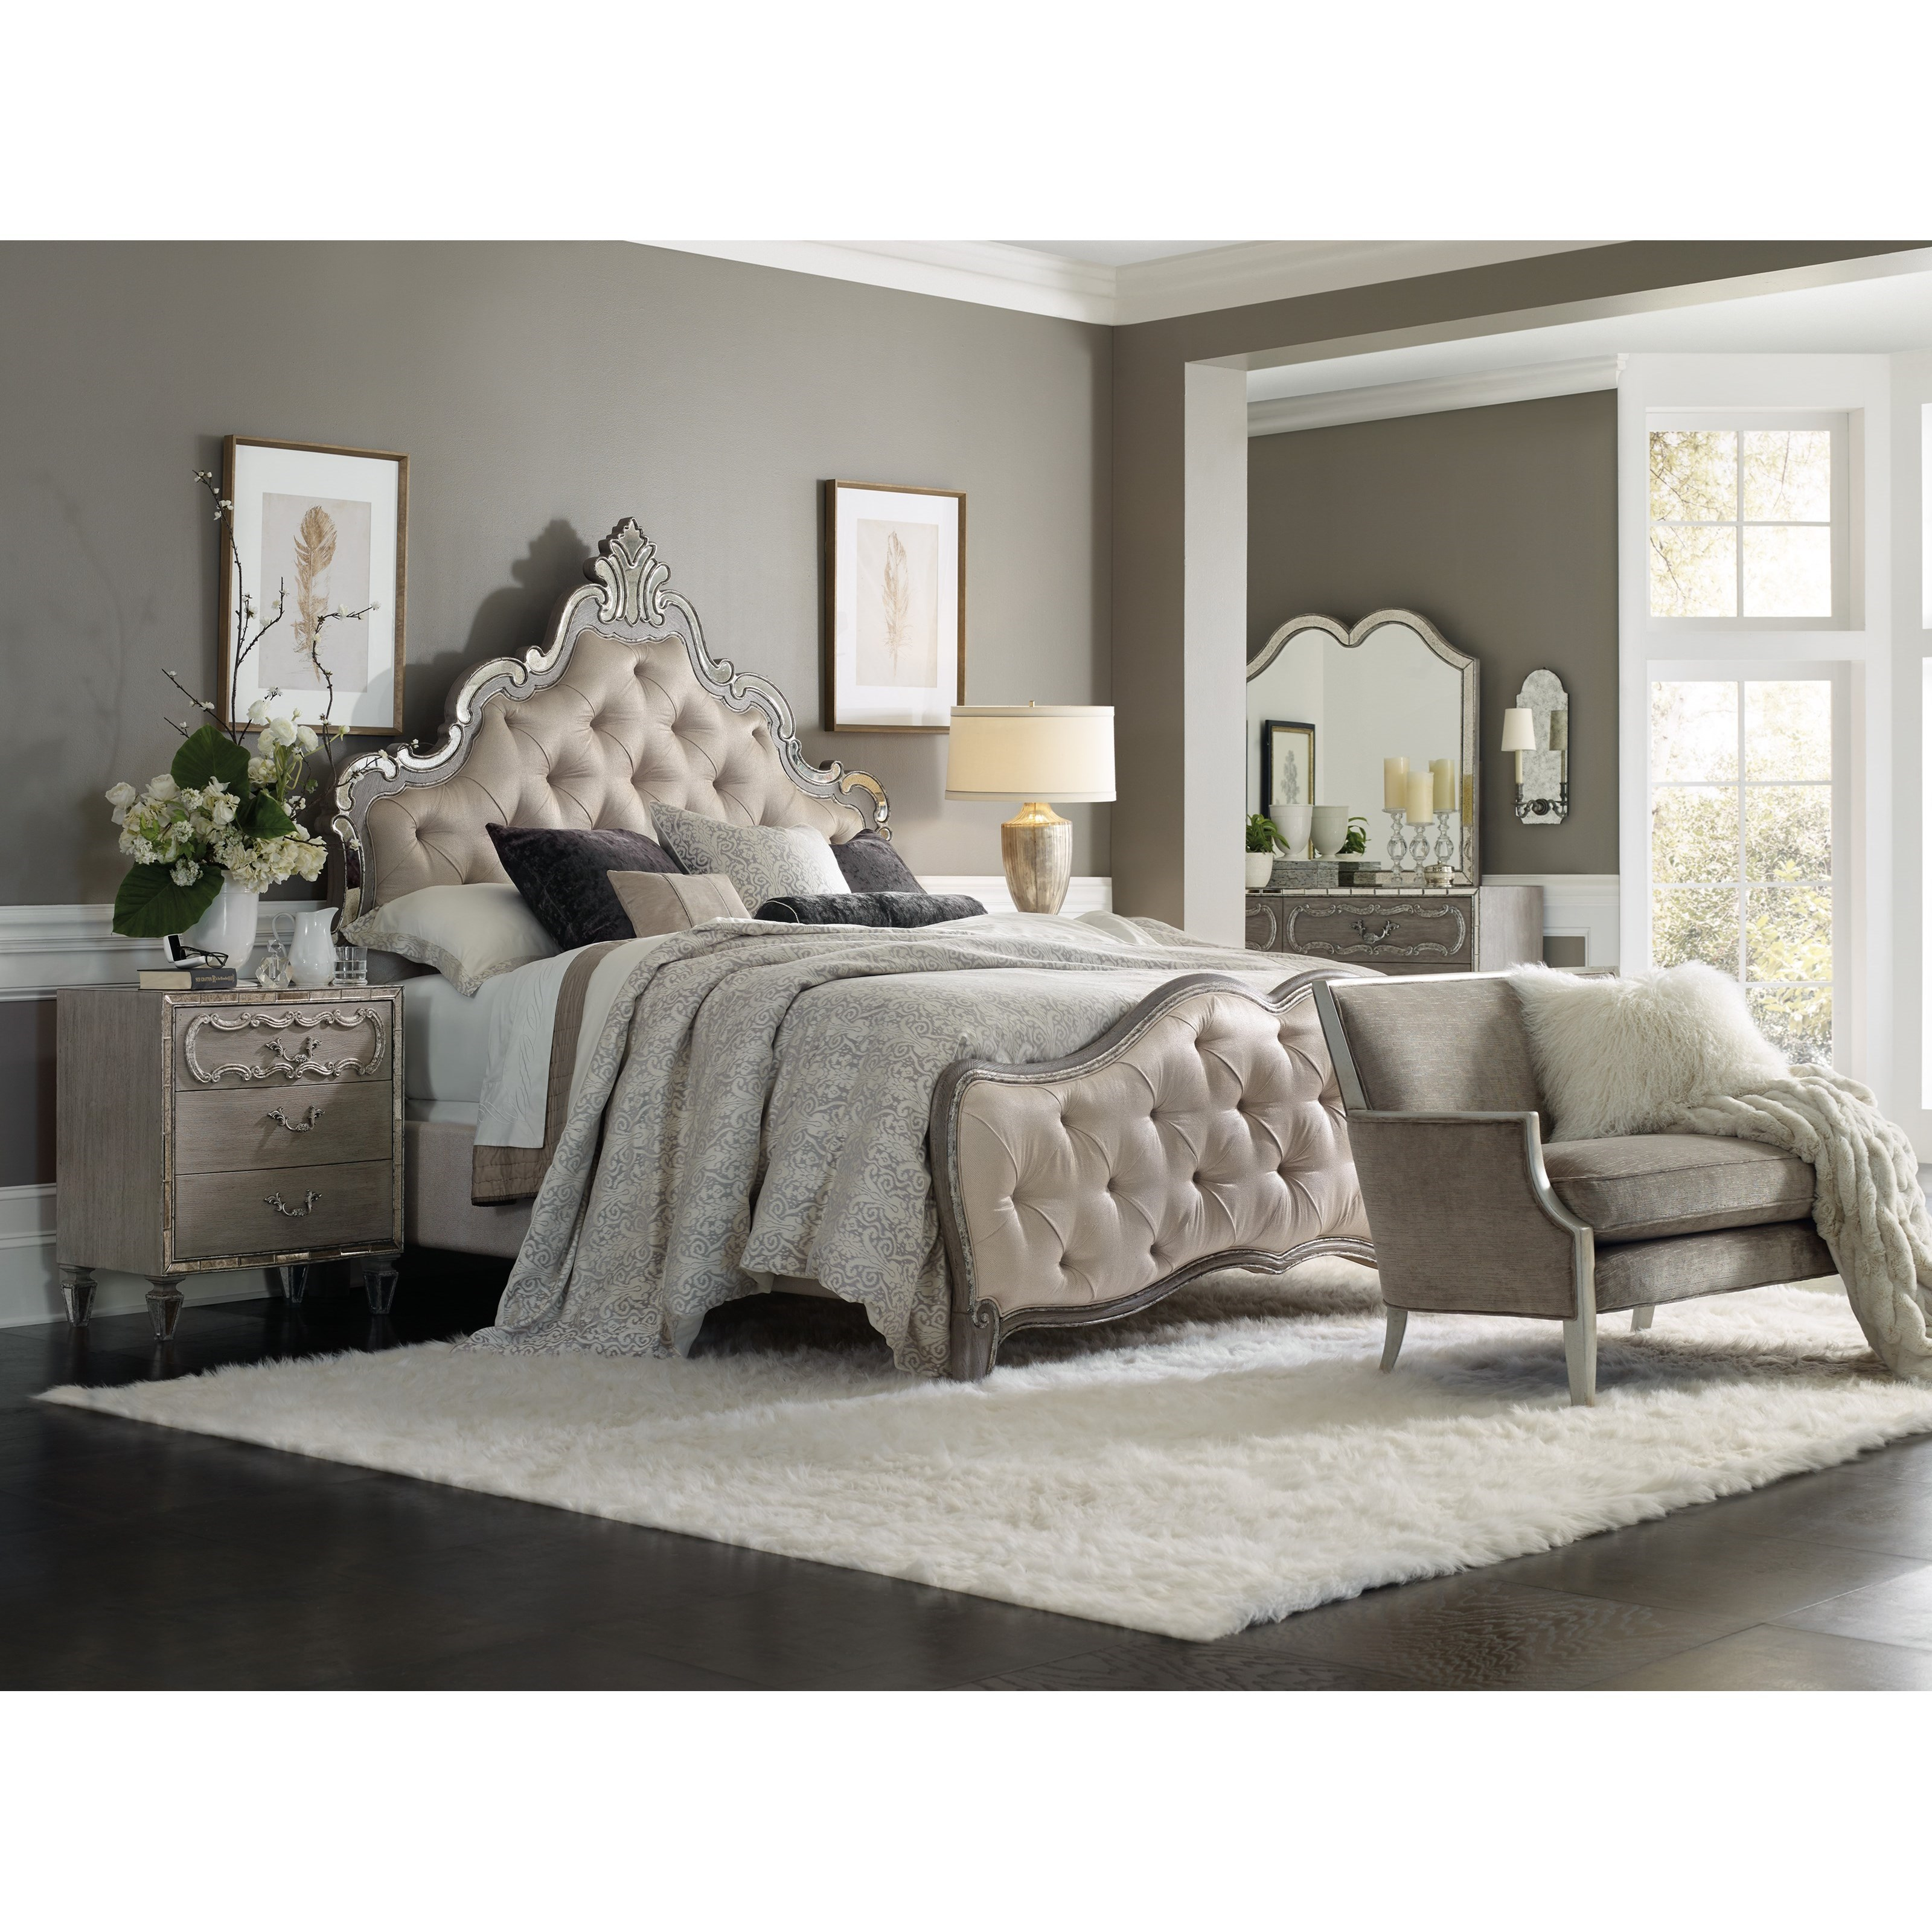 Sanctuary California King Bedroom Group by Hooker Furniture at Alison Craig Home Furnishings